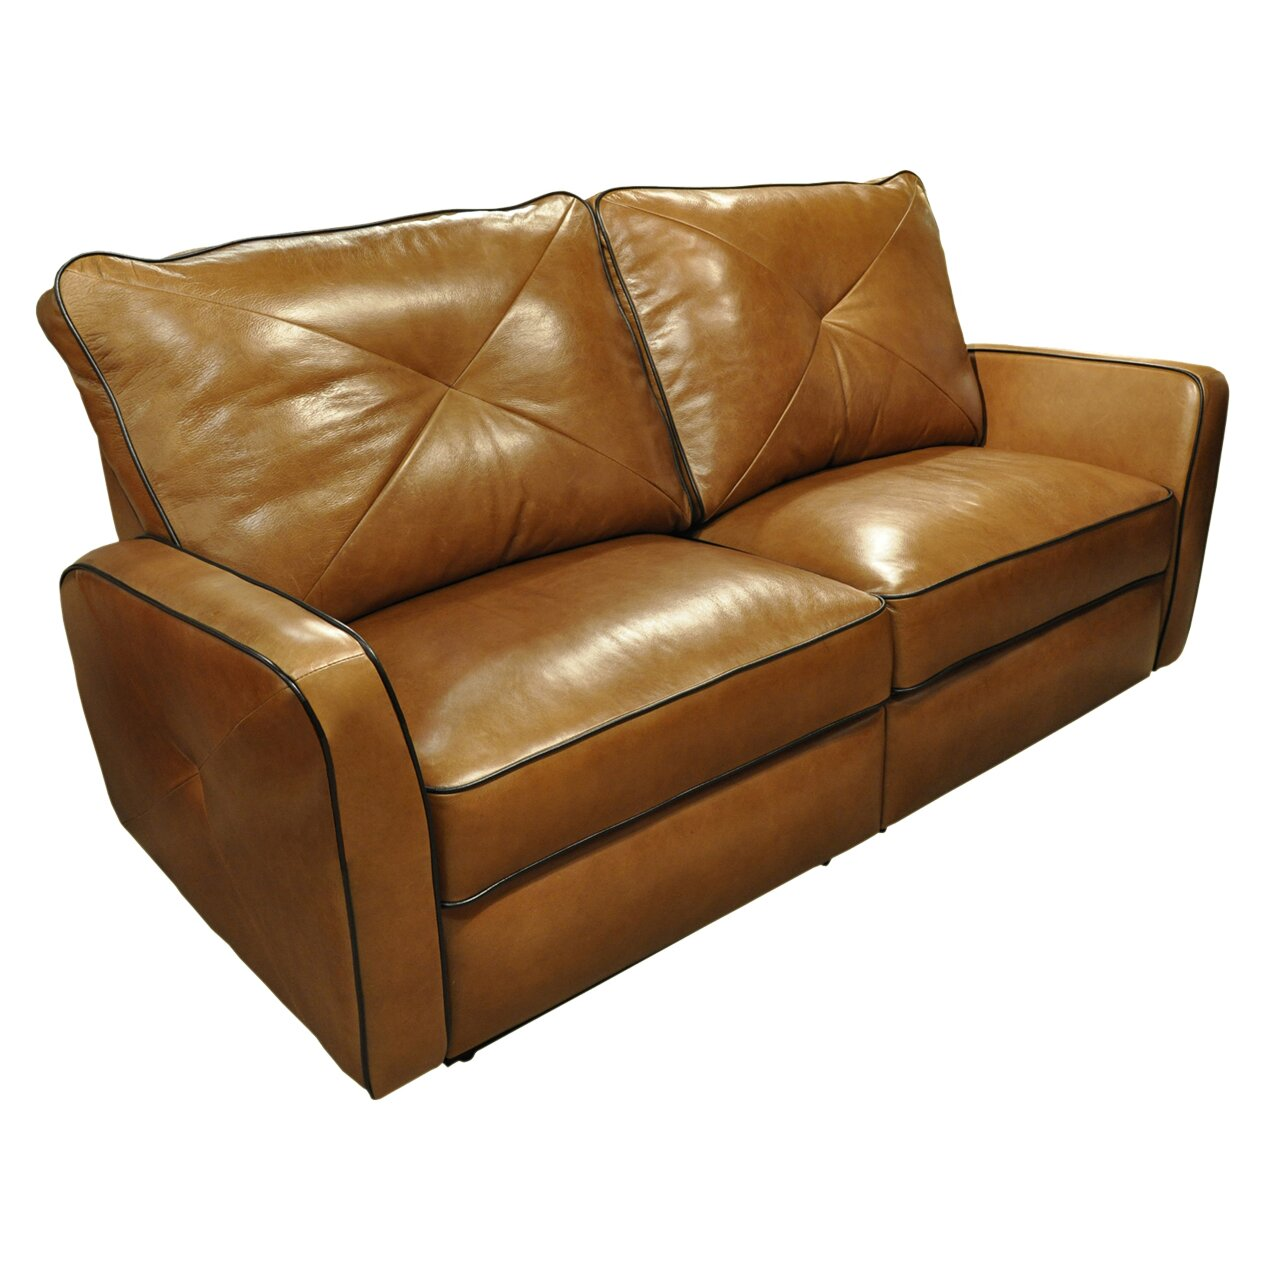 Omnia Leather Bahama Leather Reclining Loveseat Reviews Wayfair